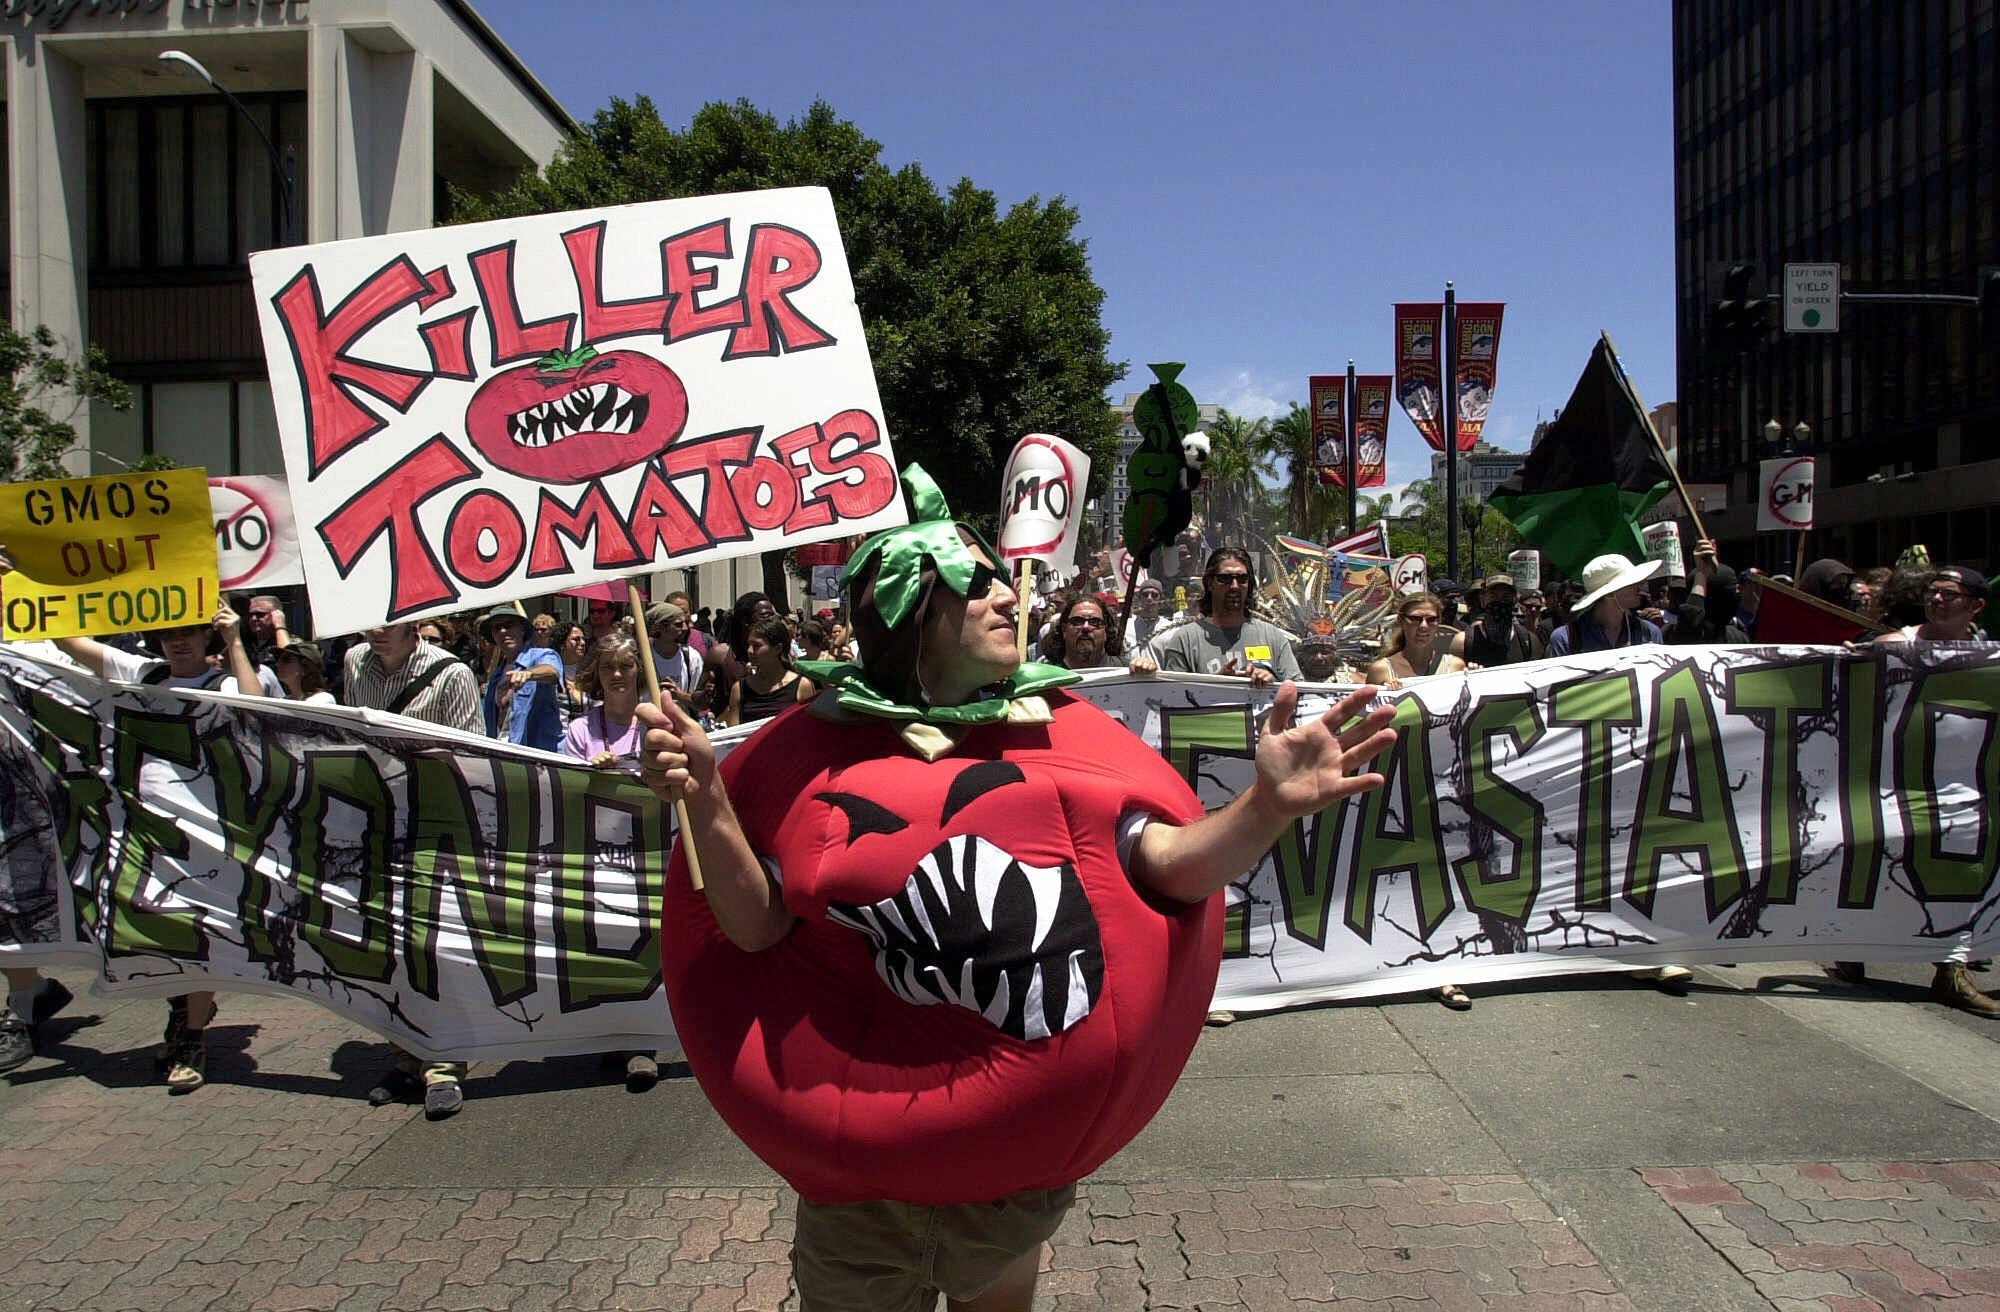 For many, perception of genetically modified foods has changed little from those of this protester dressed as a genetically altered 'Killer Tomato' marching through downtown San Diego, June 24, 2001. Joe Cavaretta/AP Photo